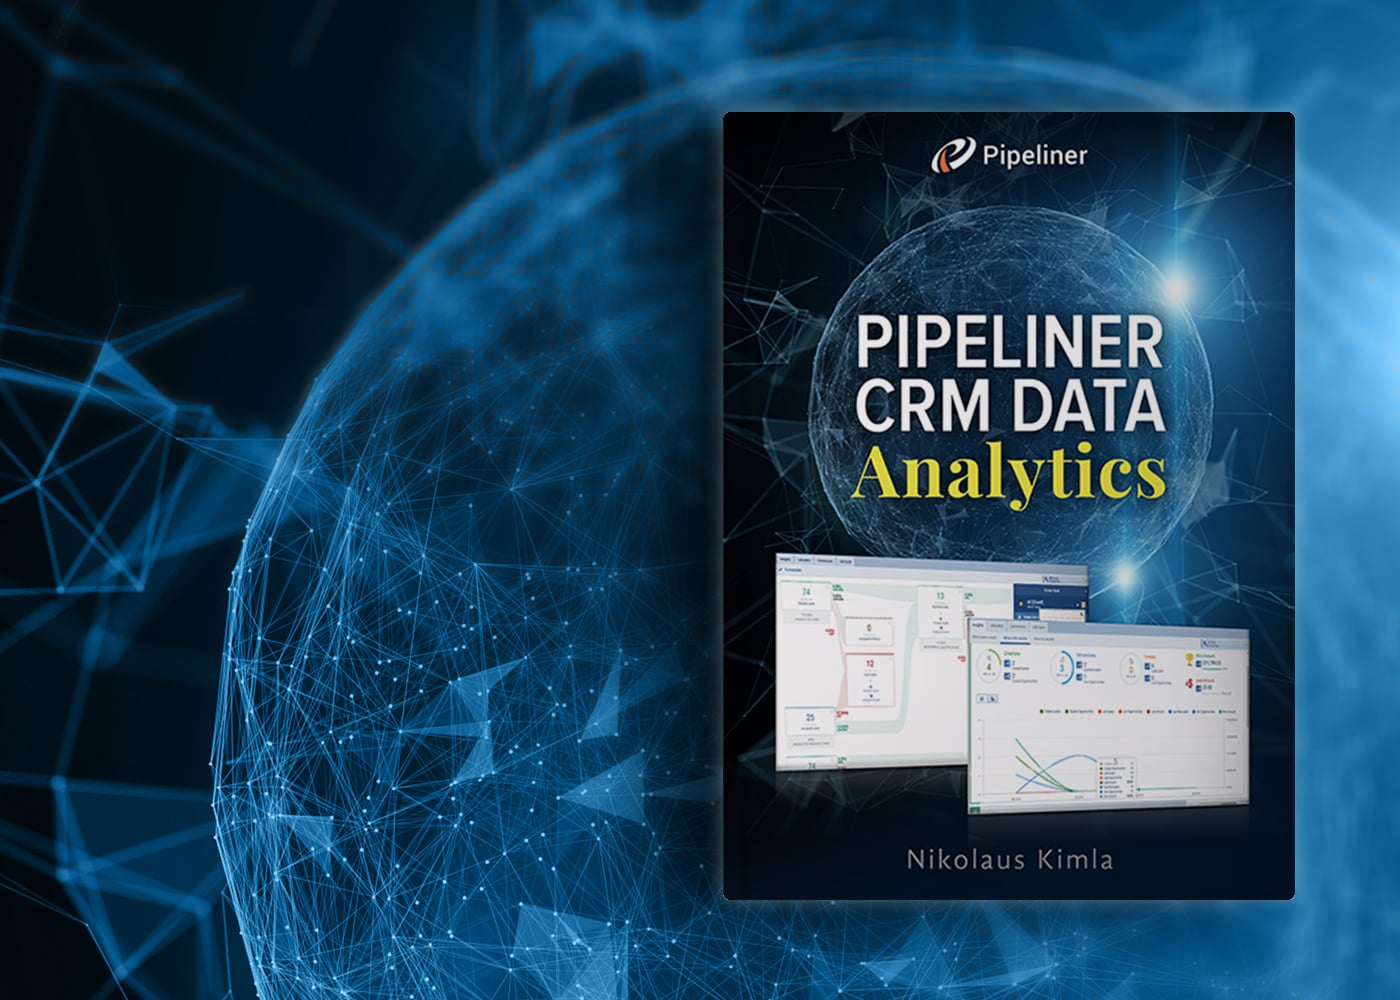 Pipeliner CRM Data analytics